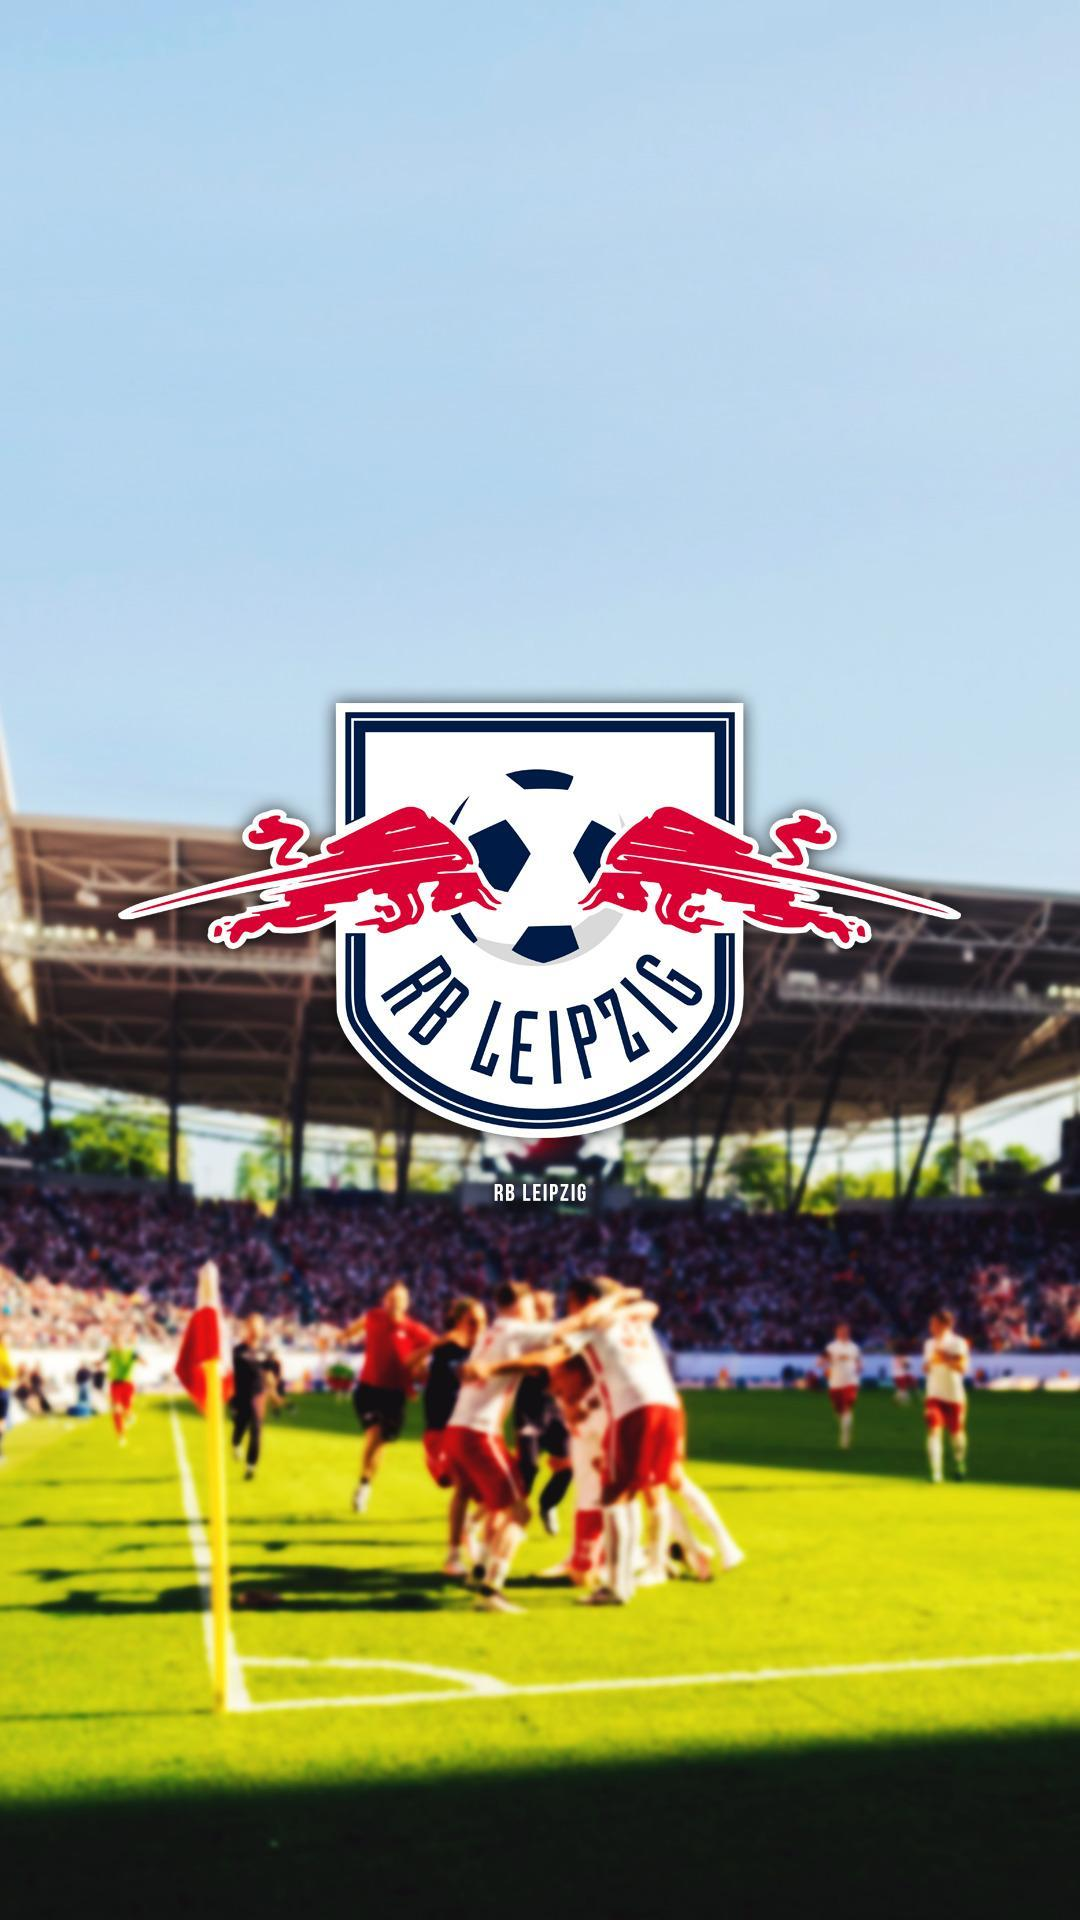 Fan App Rb Leipzig Wallpapers Full Hd For Android Apk Download